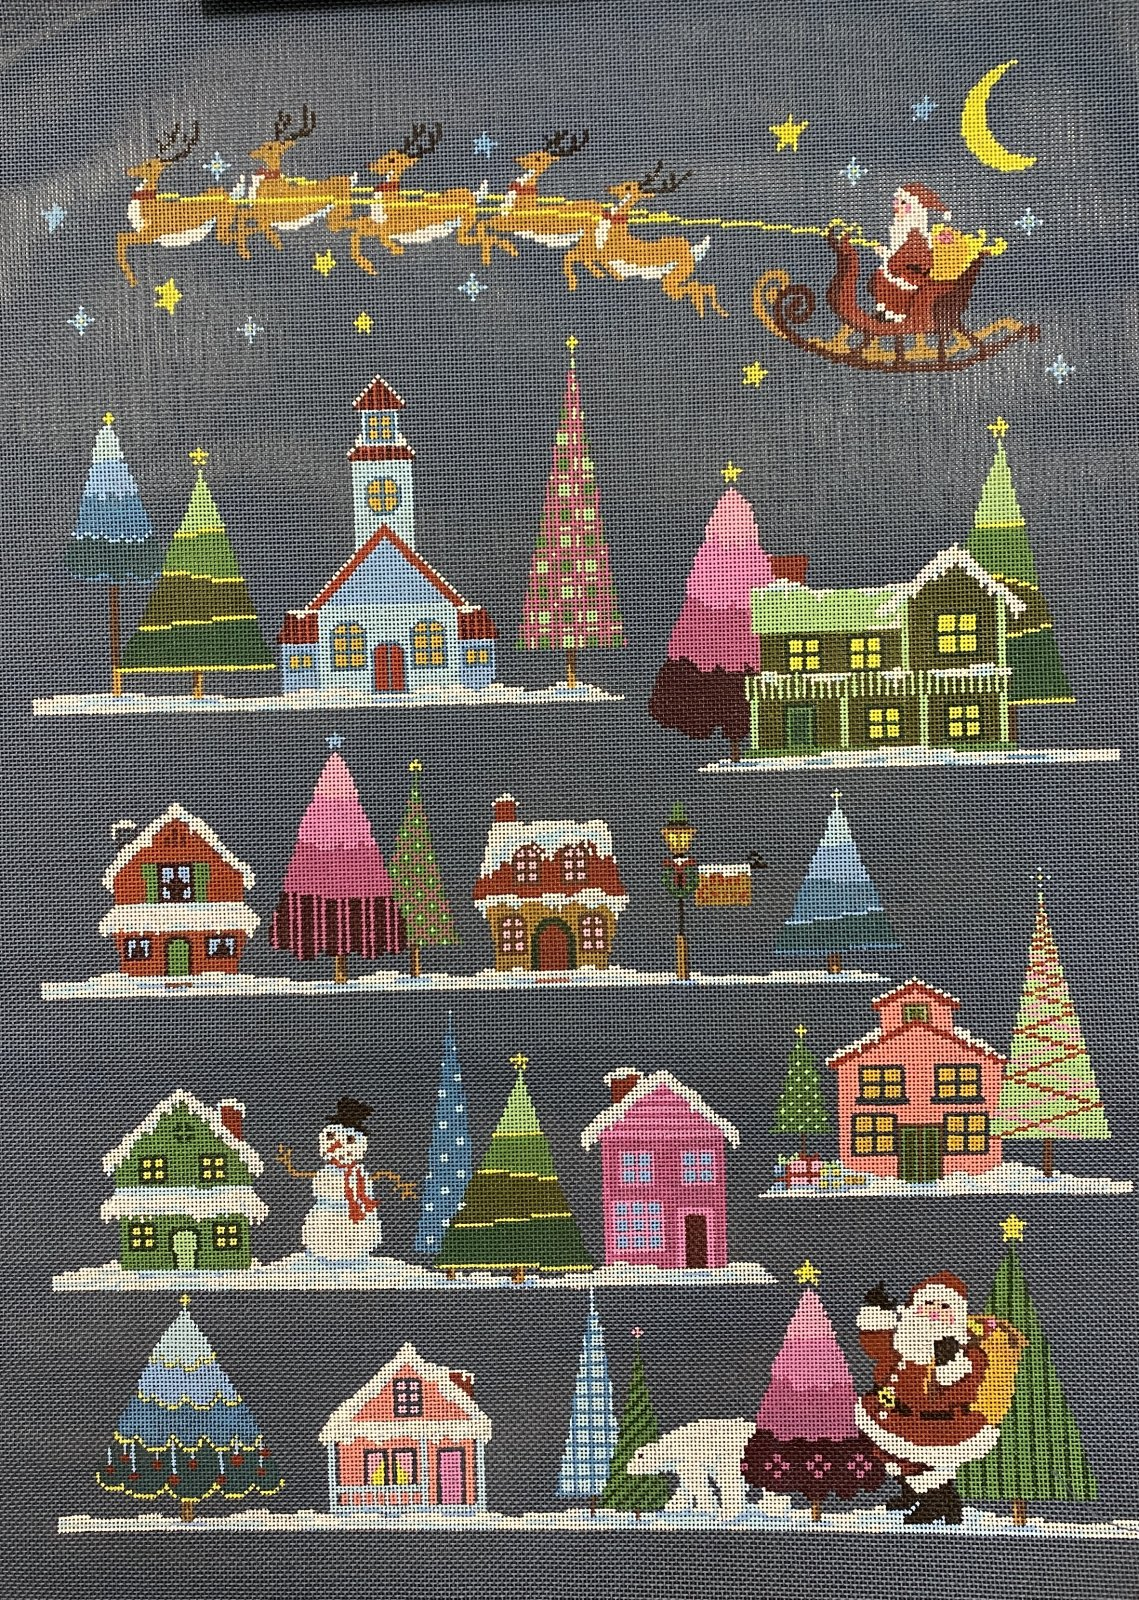 christmas village w stitch guide